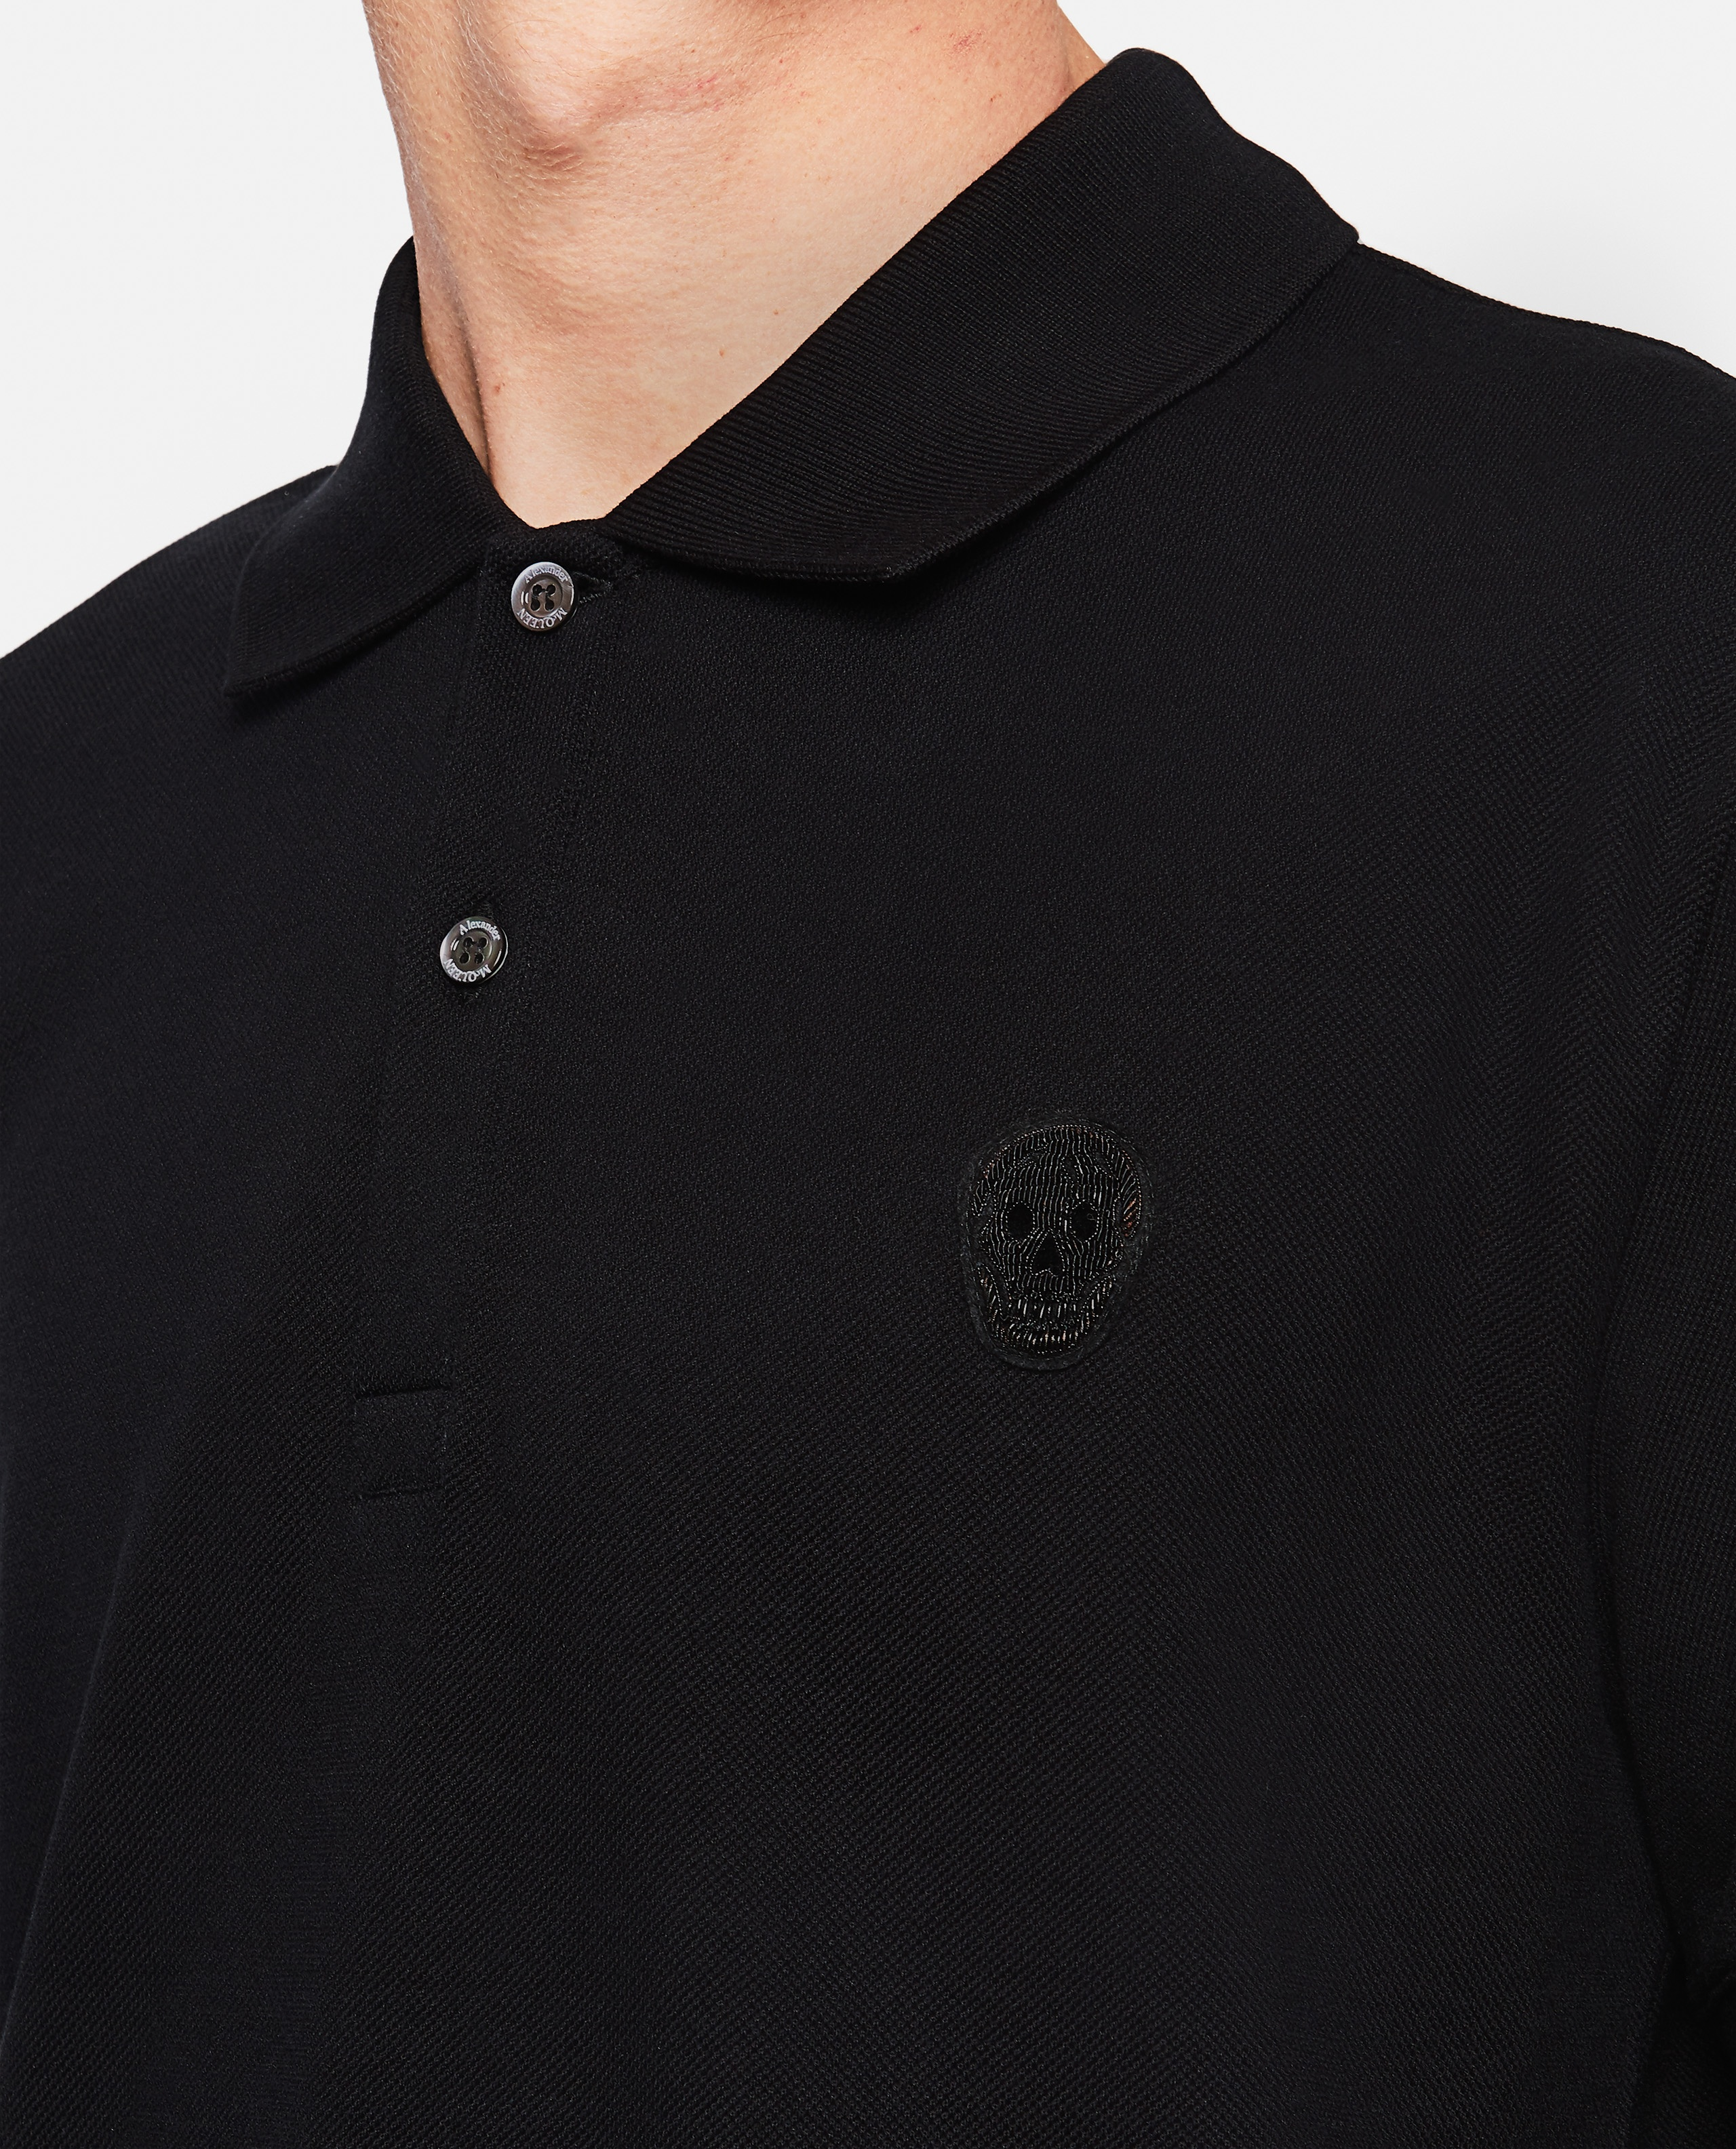 Piquet polo shirt Men Alexander McQueen 000291050042848 4